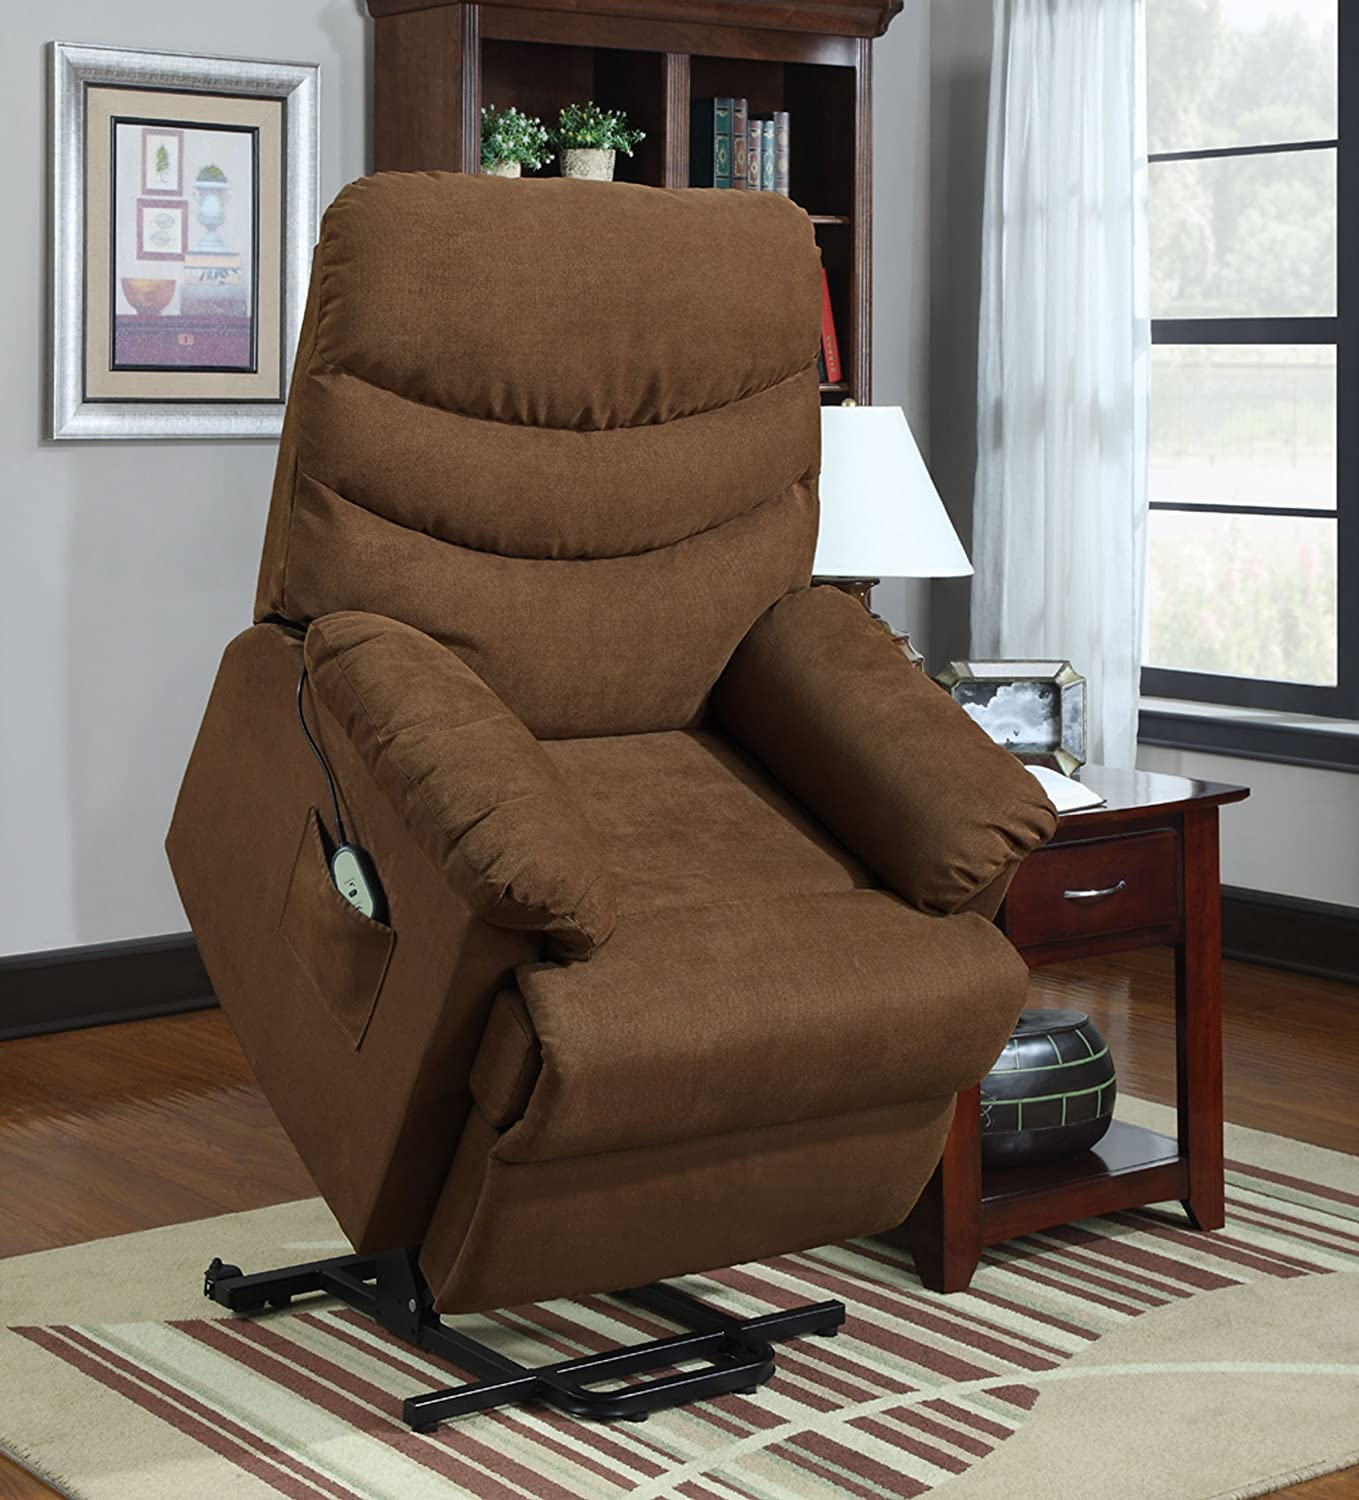 viva power recliners product pride types products lift chairs home care chair superior health perfecta